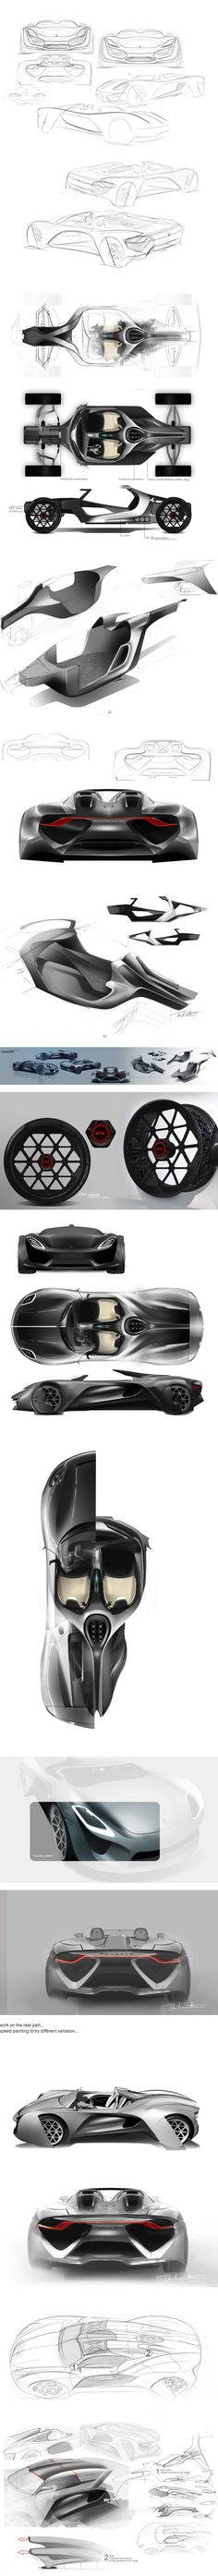 Porsche 919 project on Behance